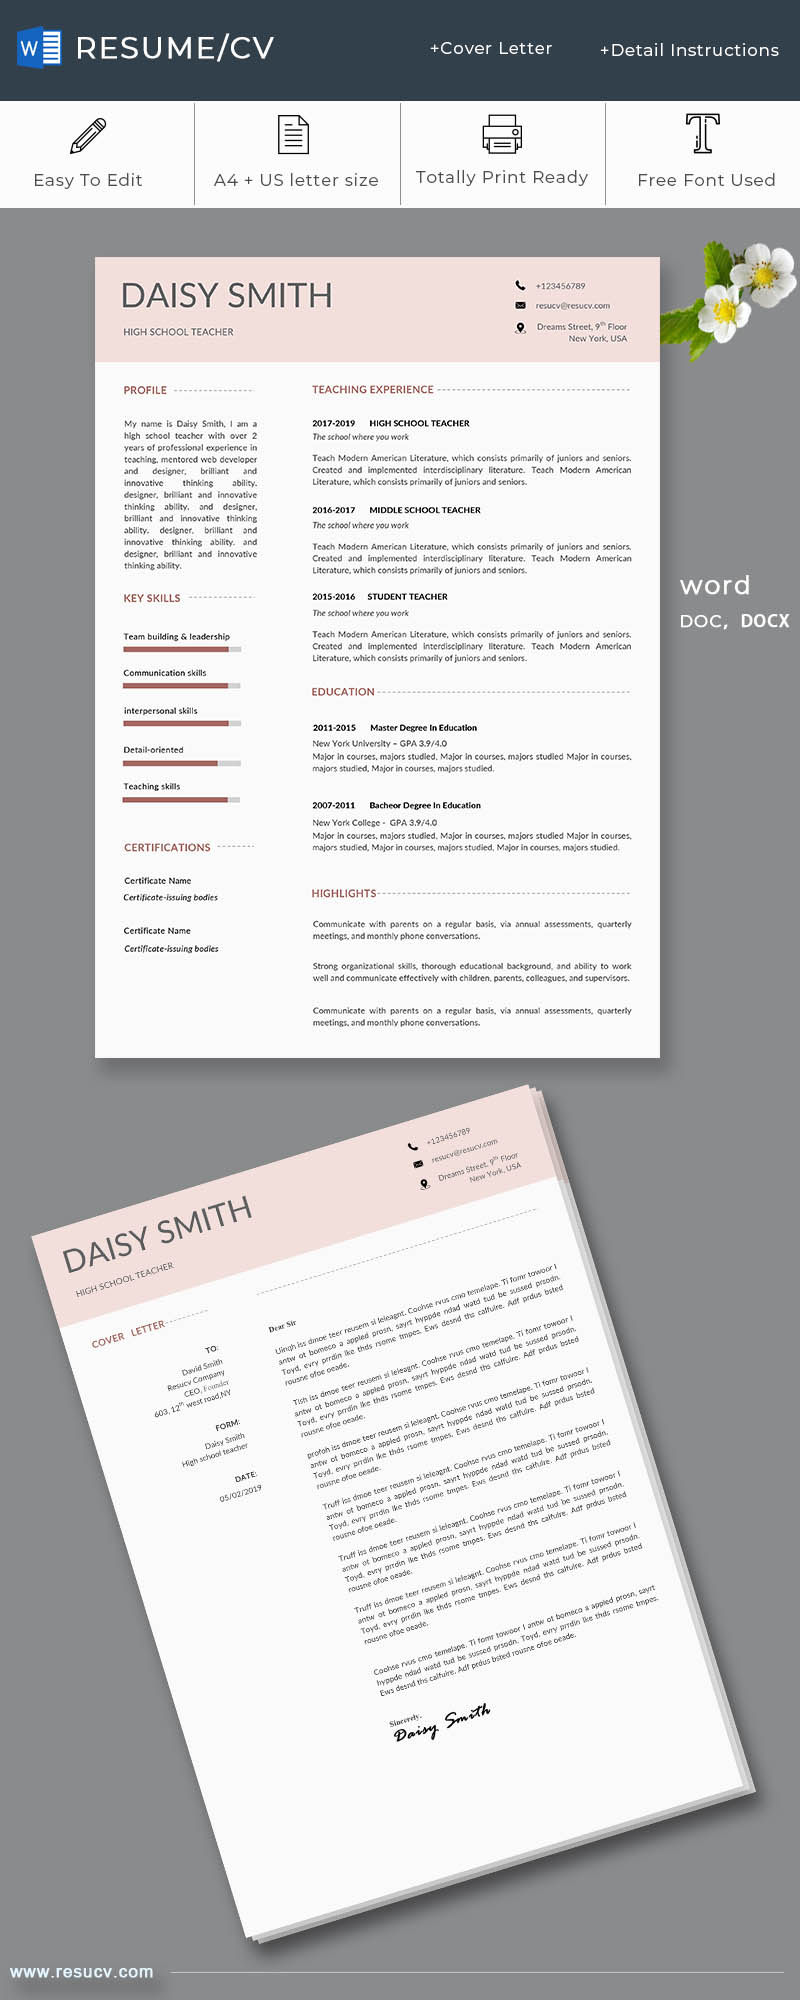 pink style school teacher resume/cv template with a cover letter